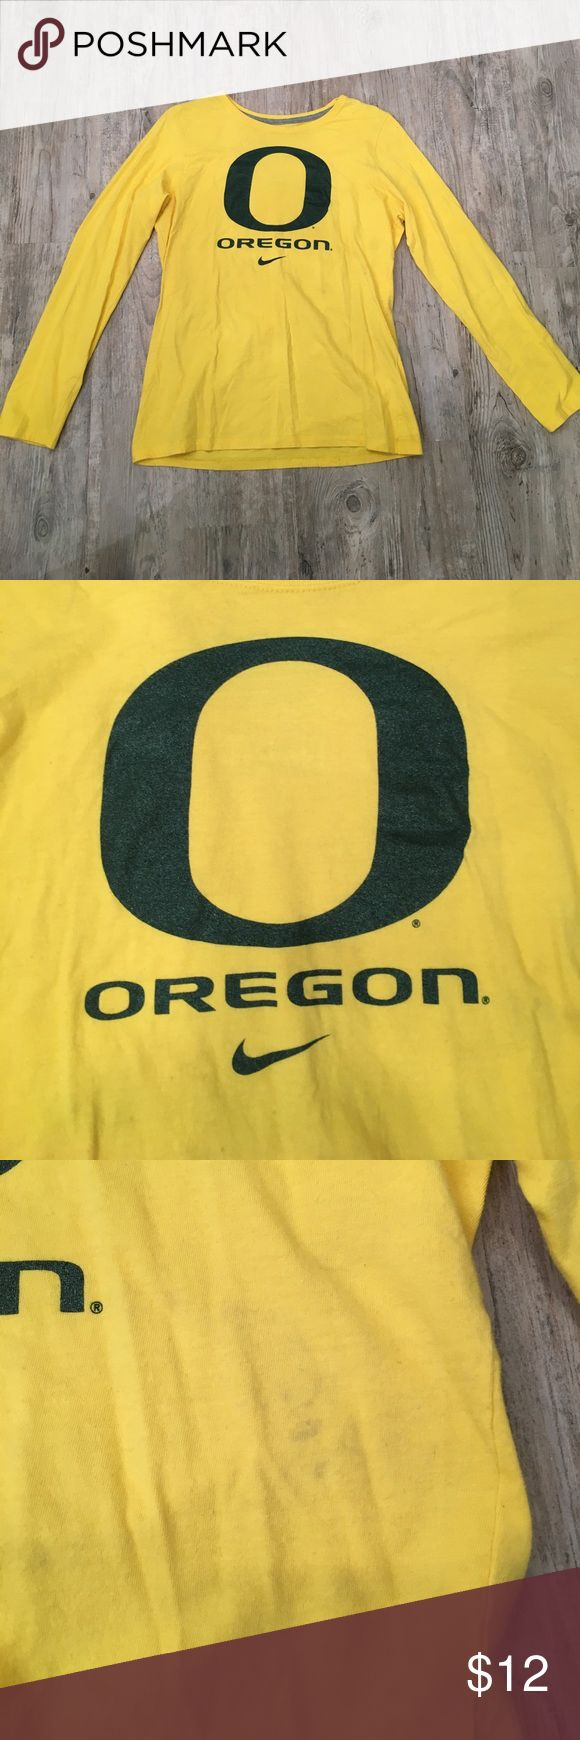 Slim fit Nike University or Oregon long sleeve tee Long sleeve, slim fit Nike University of Oregon Duck shirt. Only worn once to a championship game, but had a light stain on the front as pictured. Good condition! Nike Tops Tees - Long Sleeve